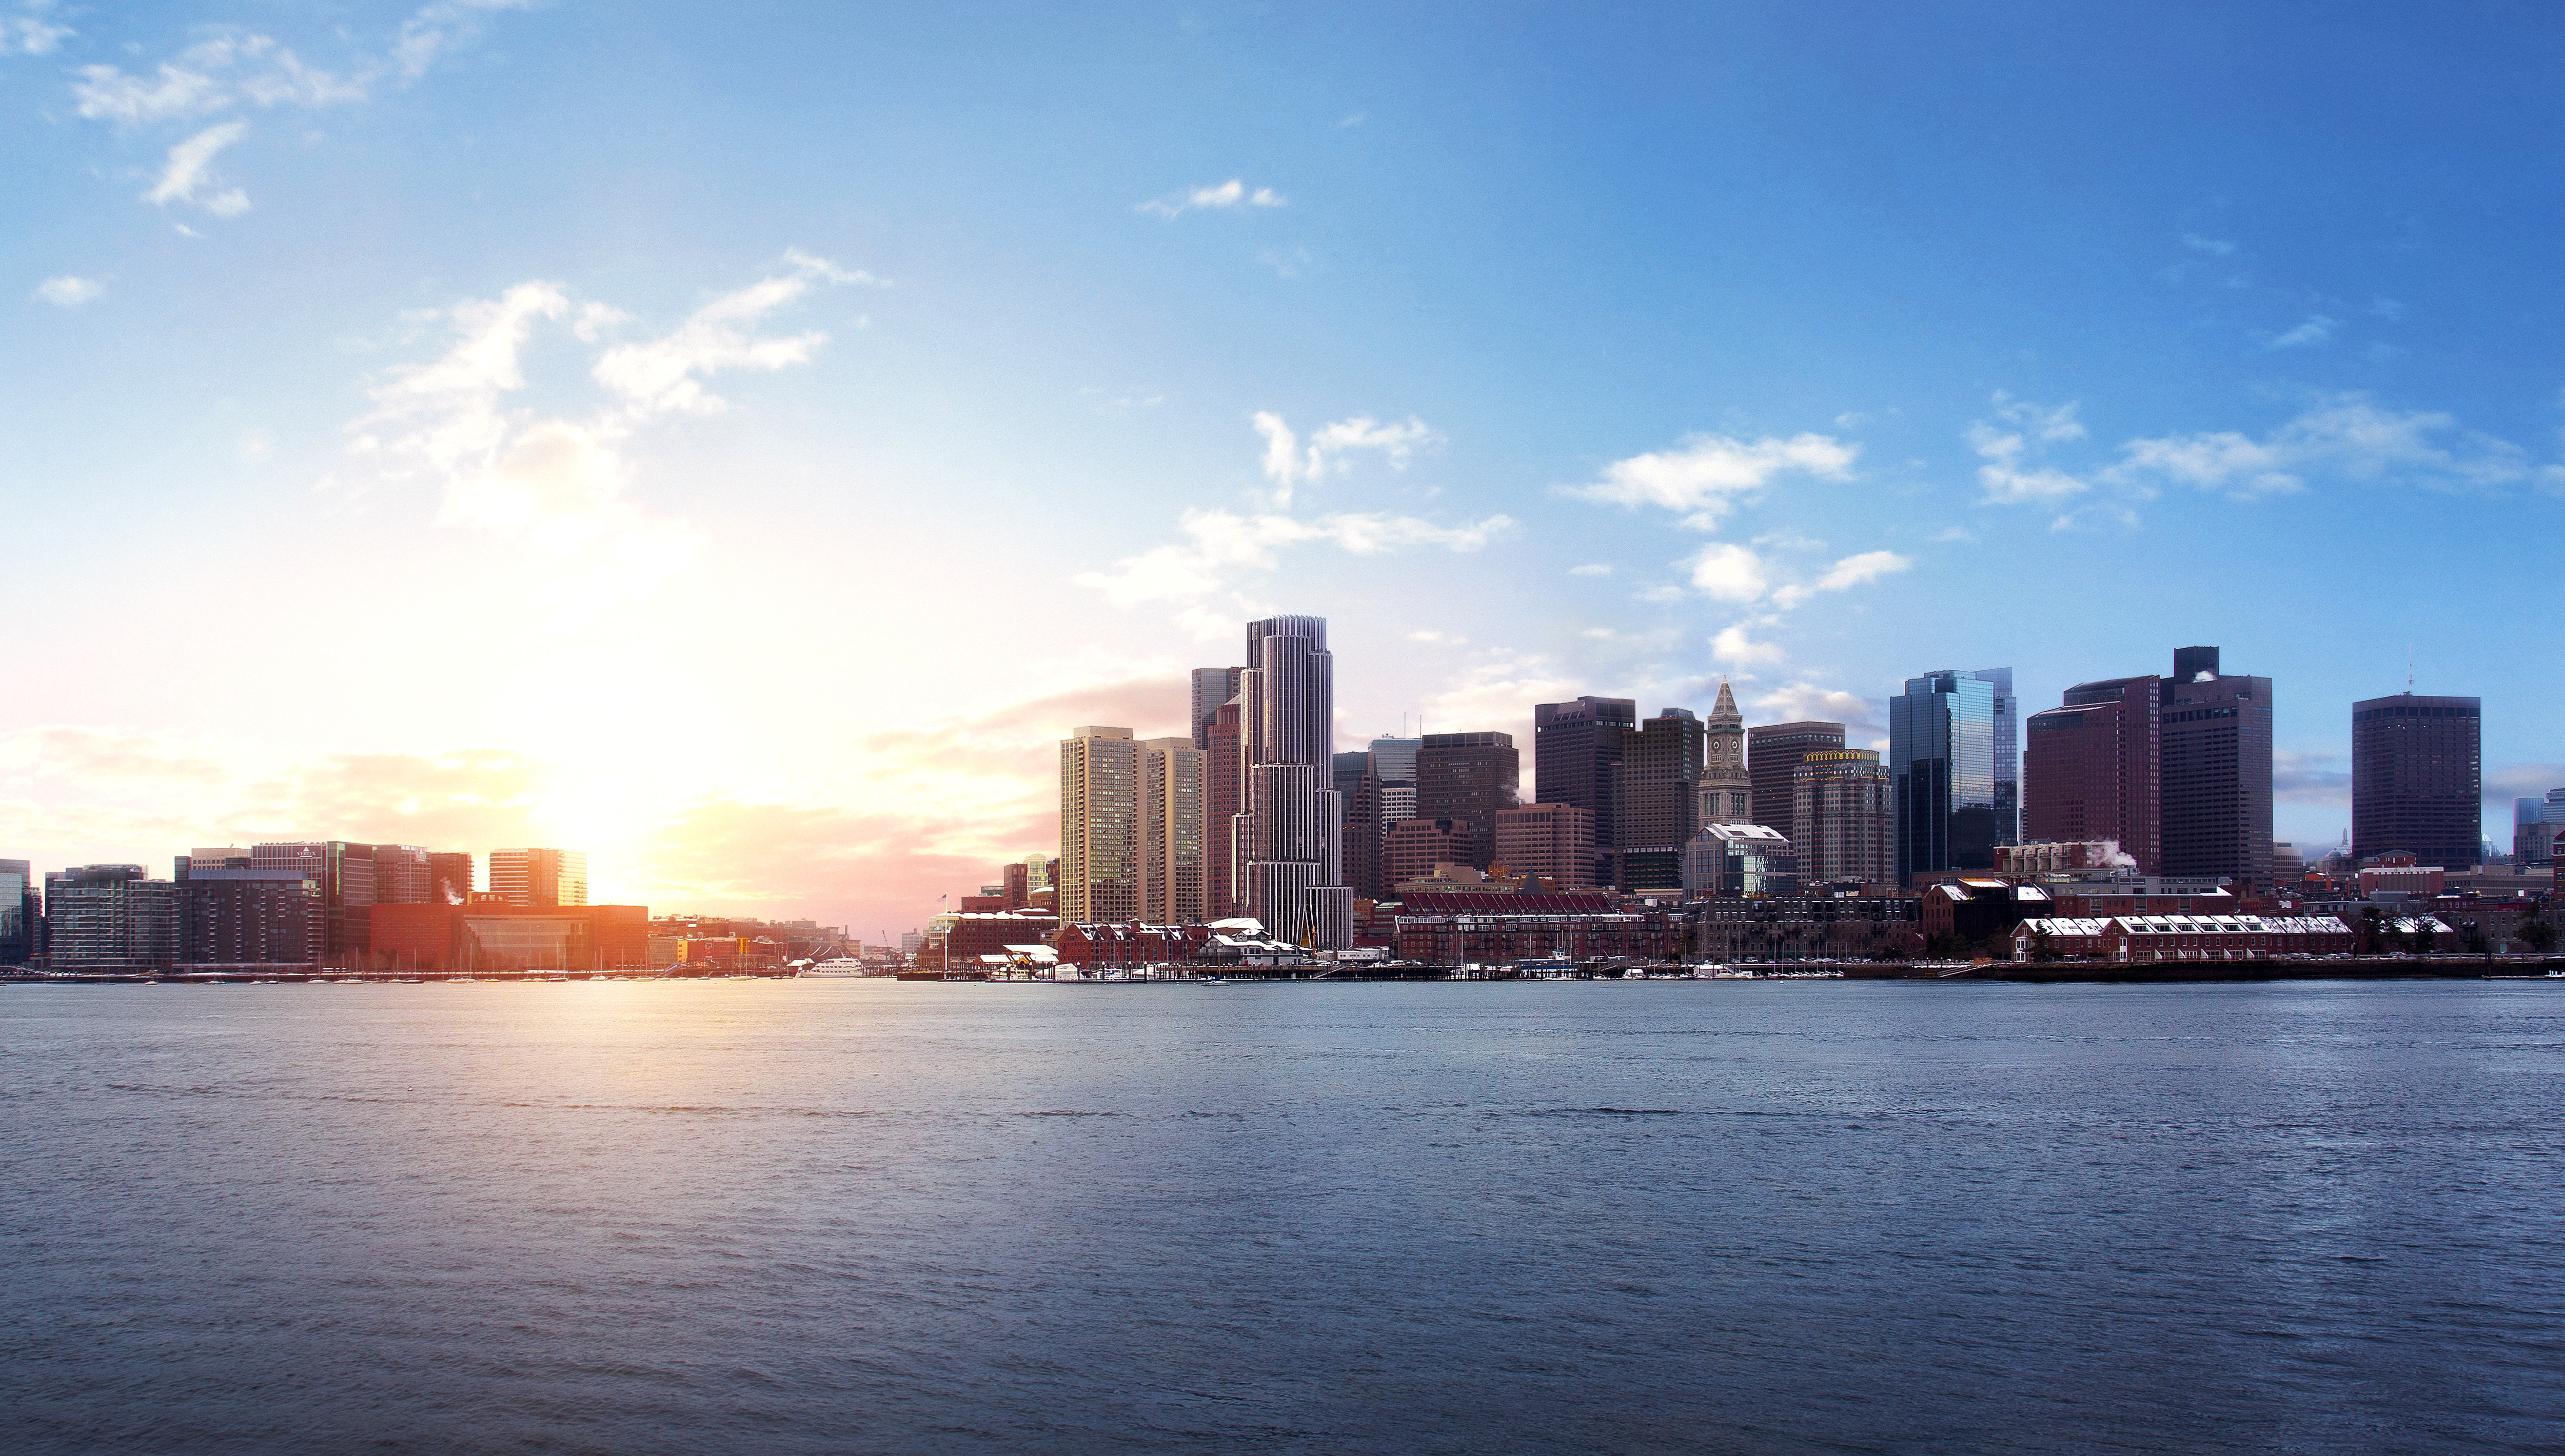 Rendering of a city skyline on a harbor, with many tall buildings.